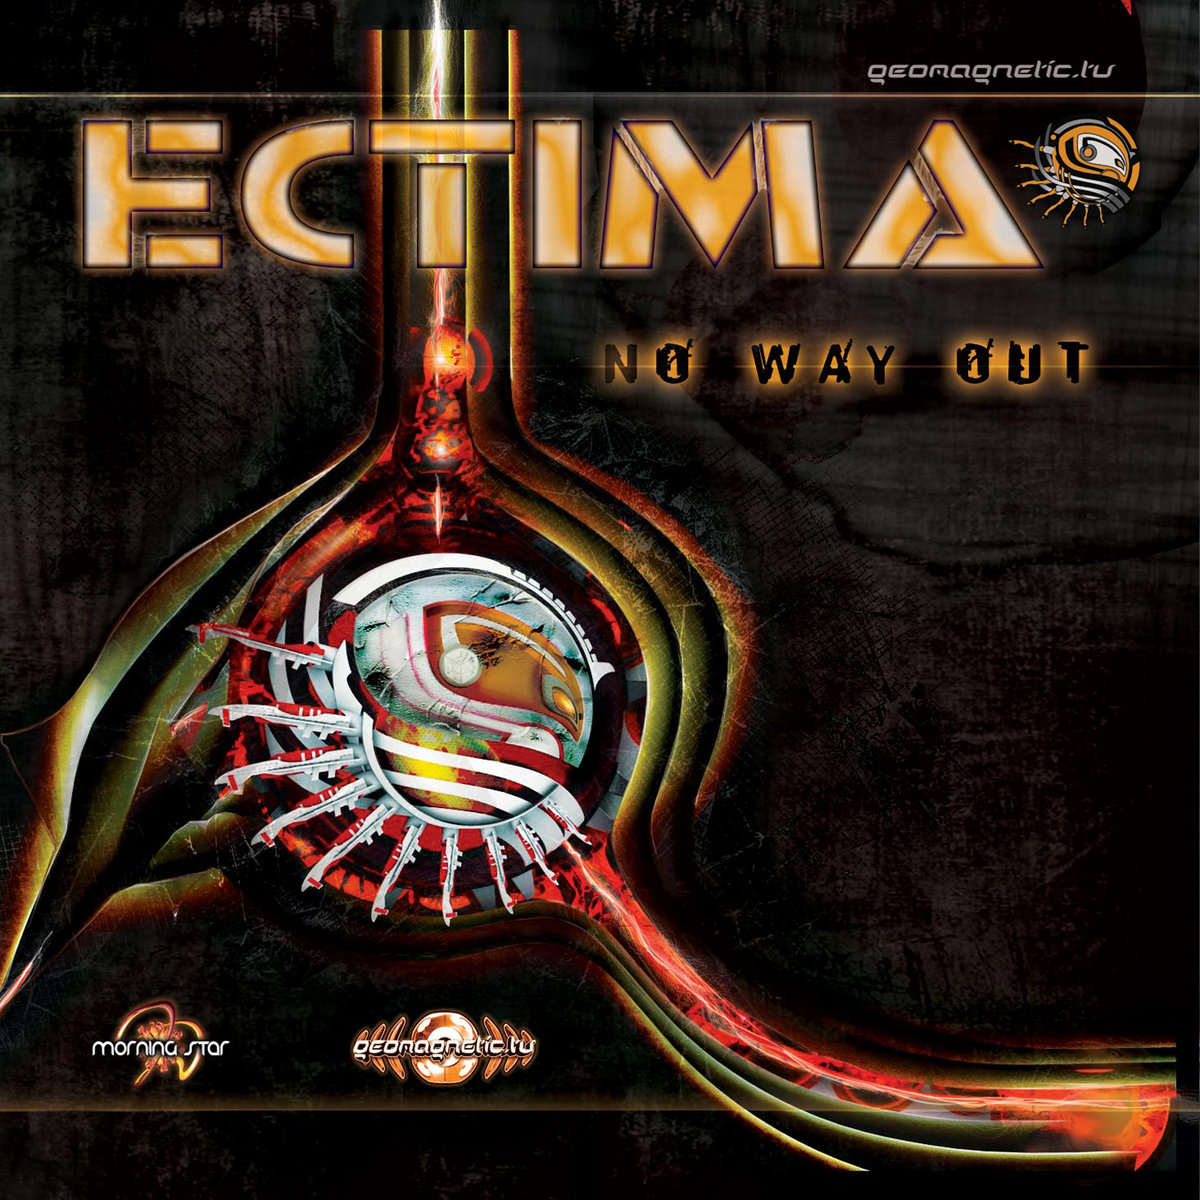 Ectima - Feed Your Ego @ 'No Way Out' album (electronic, goa)